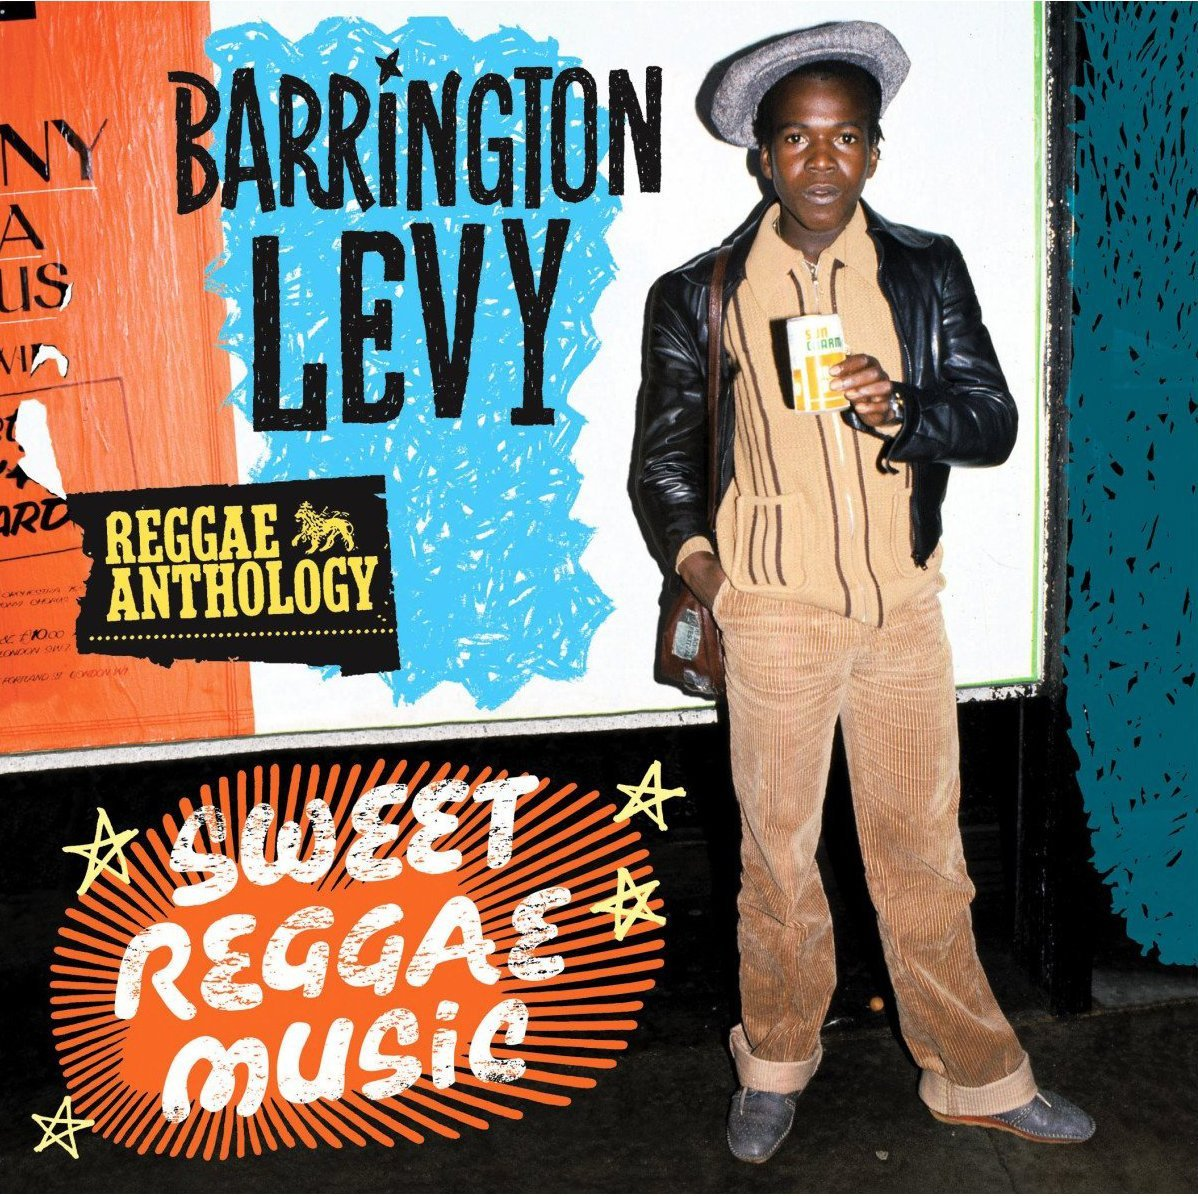 Reggae Anthology Barrington Levy - Sweet Reggae Music